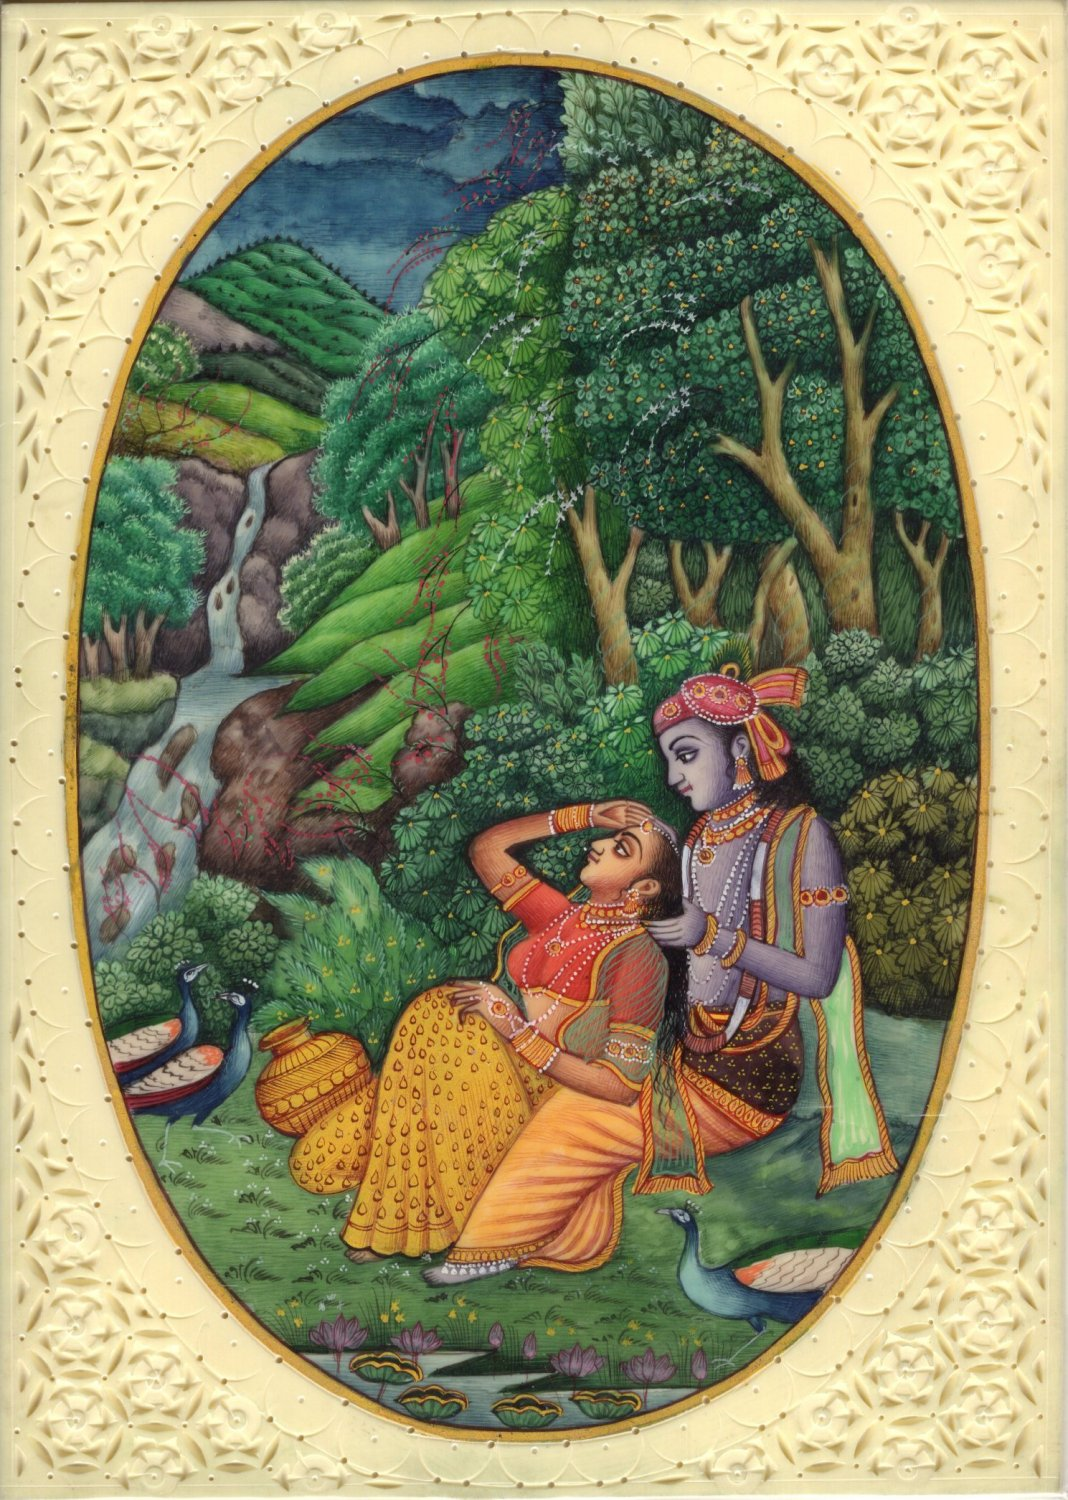 Krishna Radha Relationship Art Handmade Miniature Hindu Deity Drawing Painting